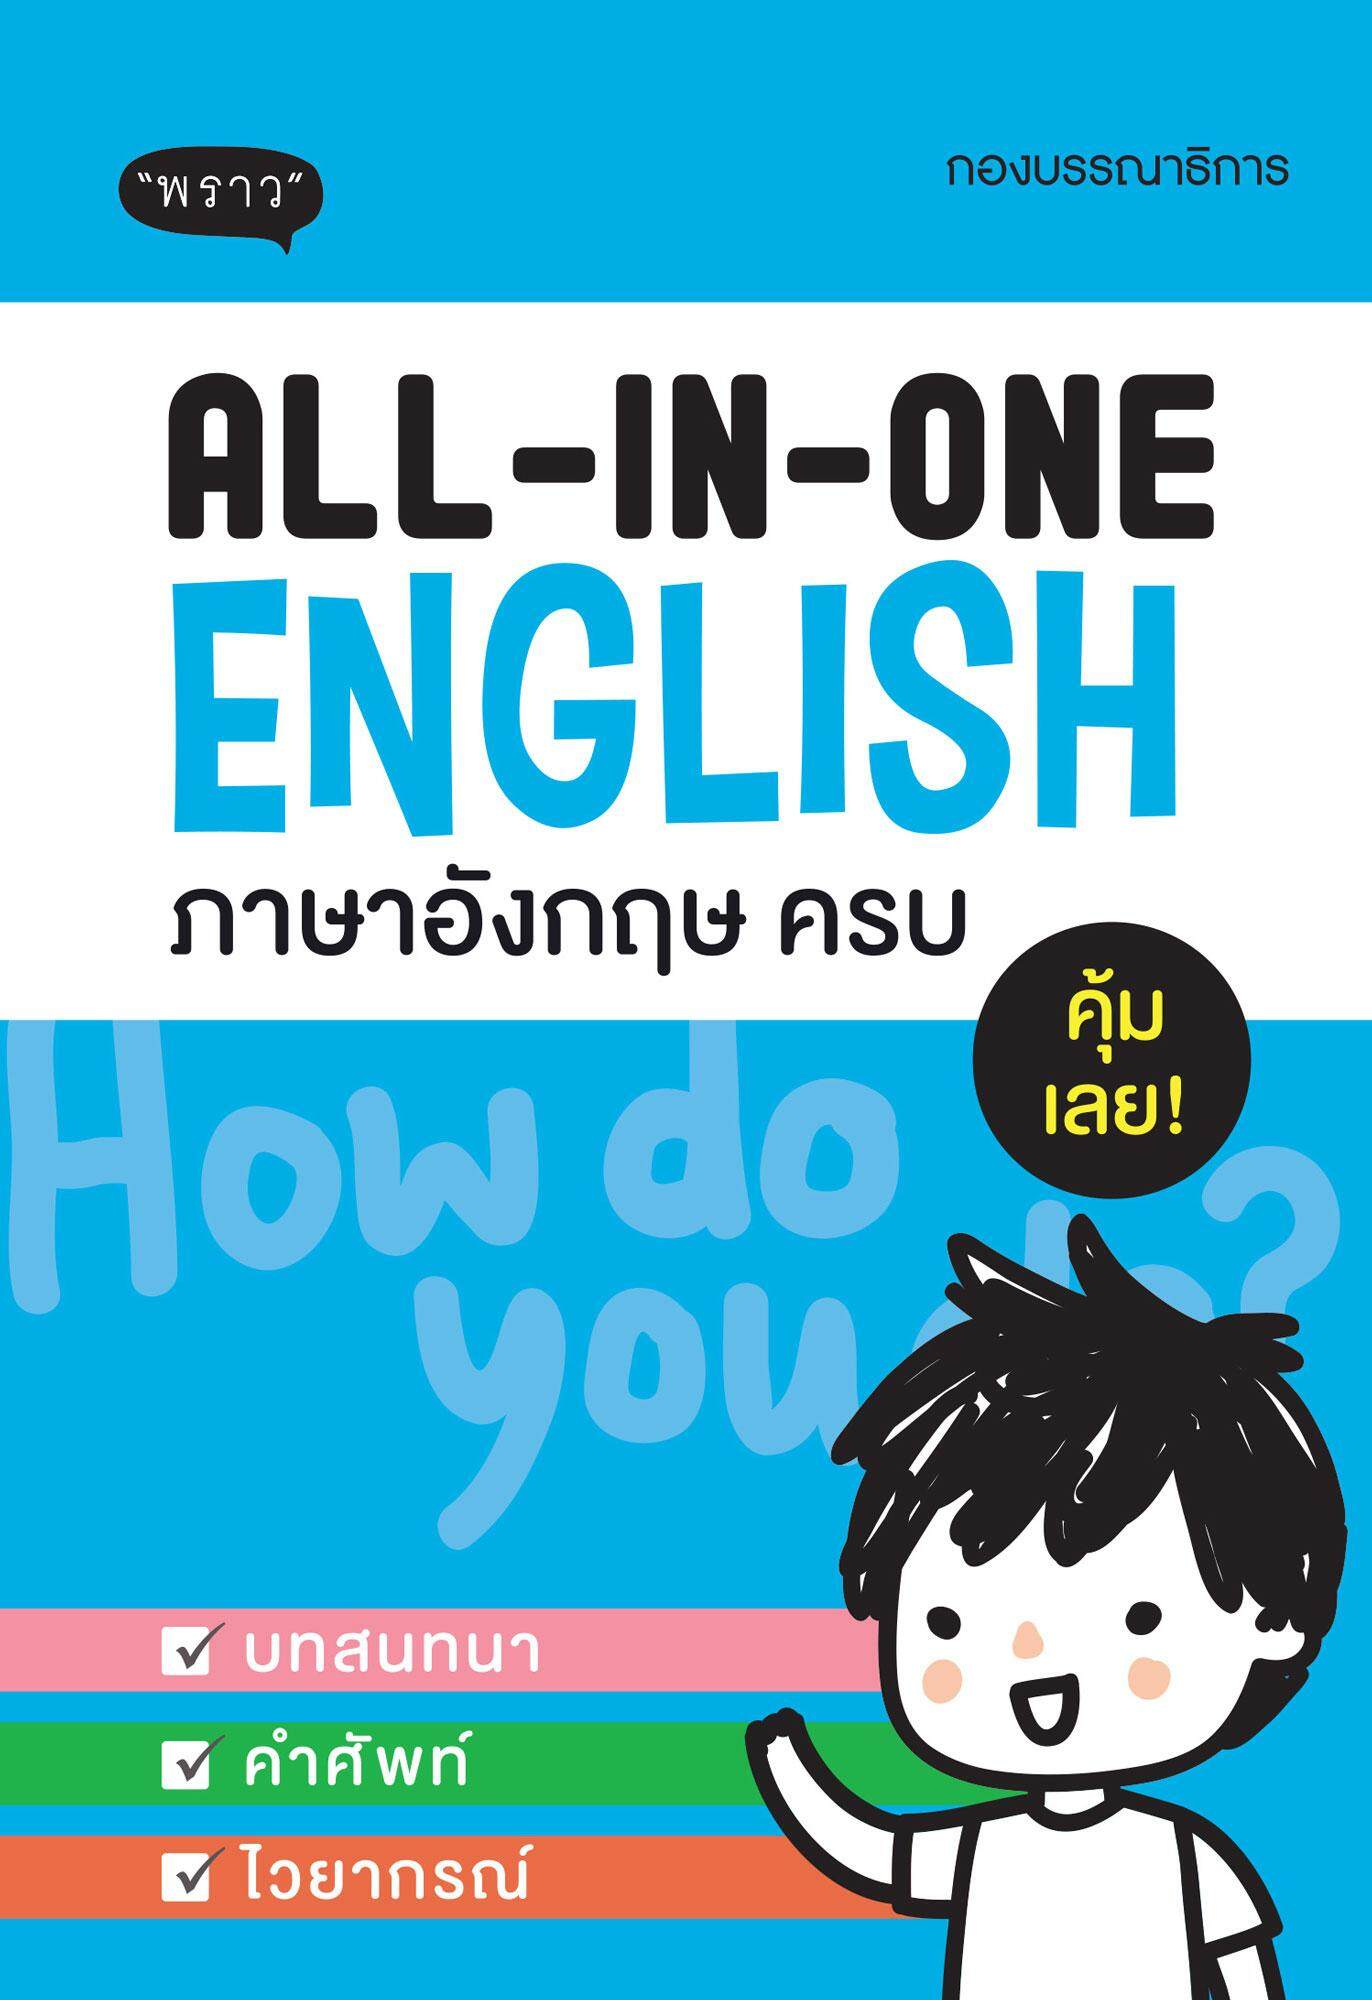 All-In-One English ภาษาอังกฤษครบ By Proud Products.